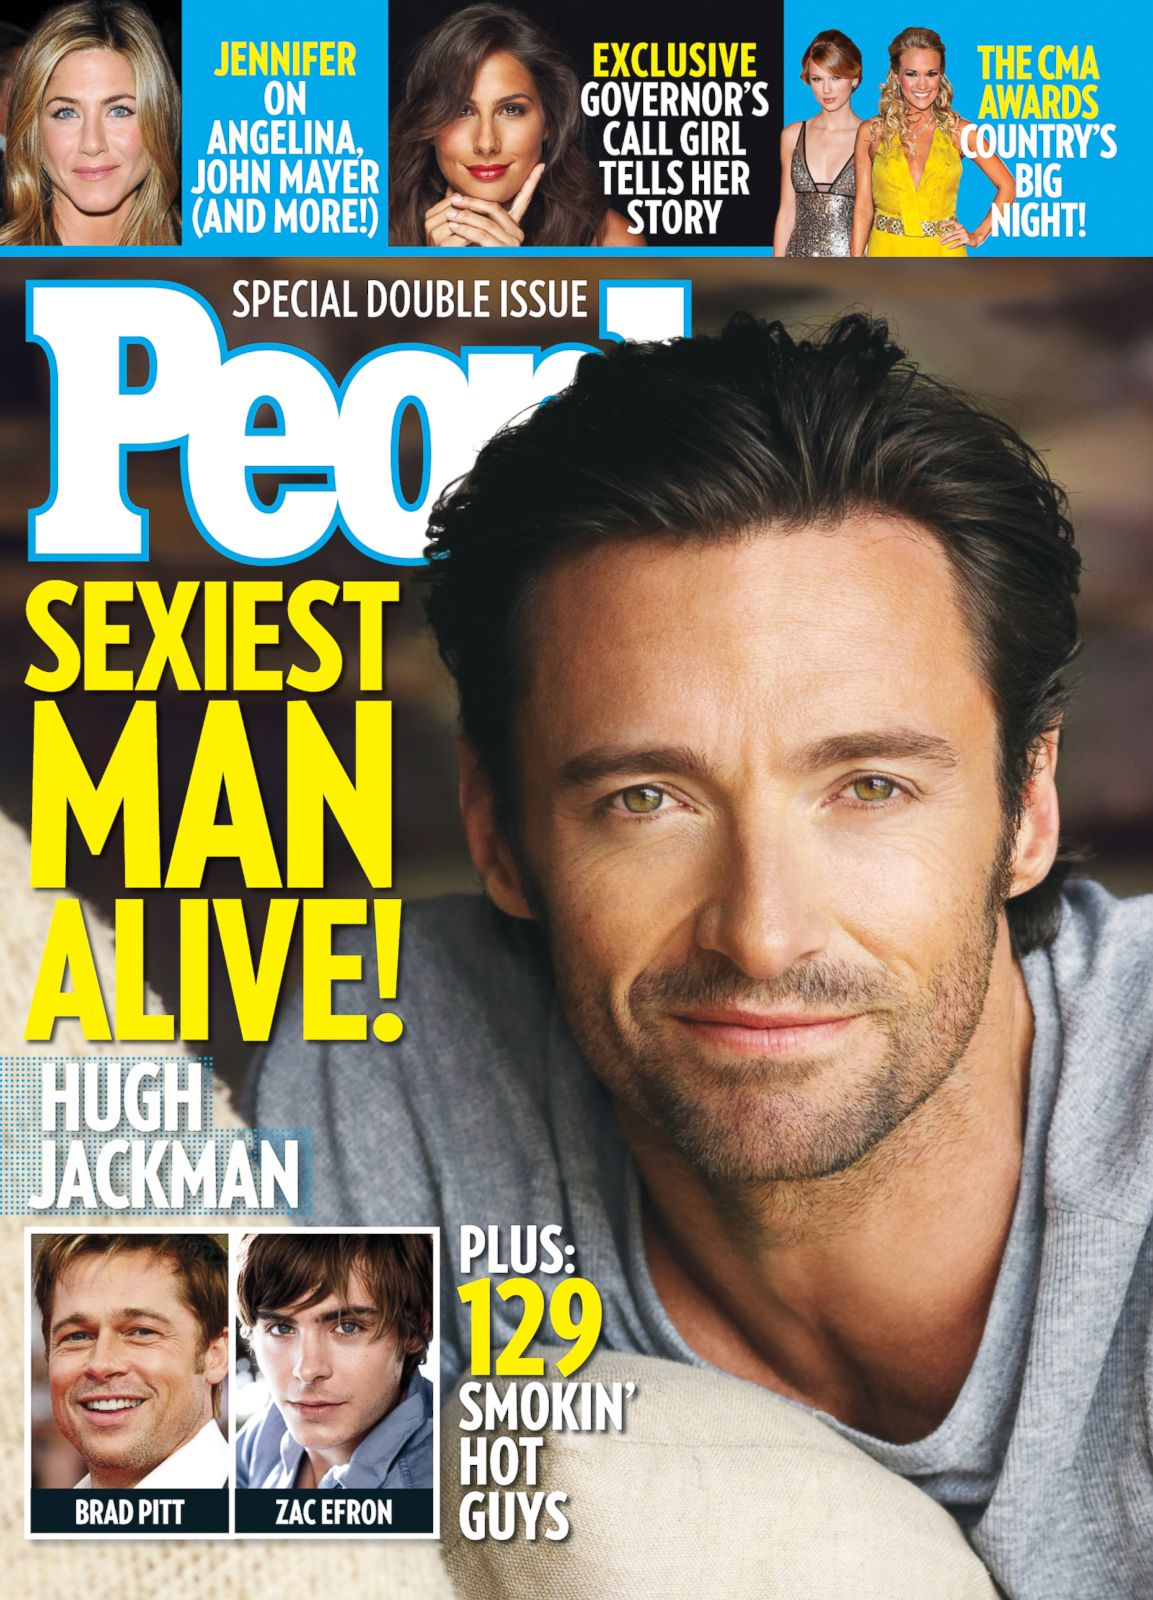 List of sexiest man alive picture 71